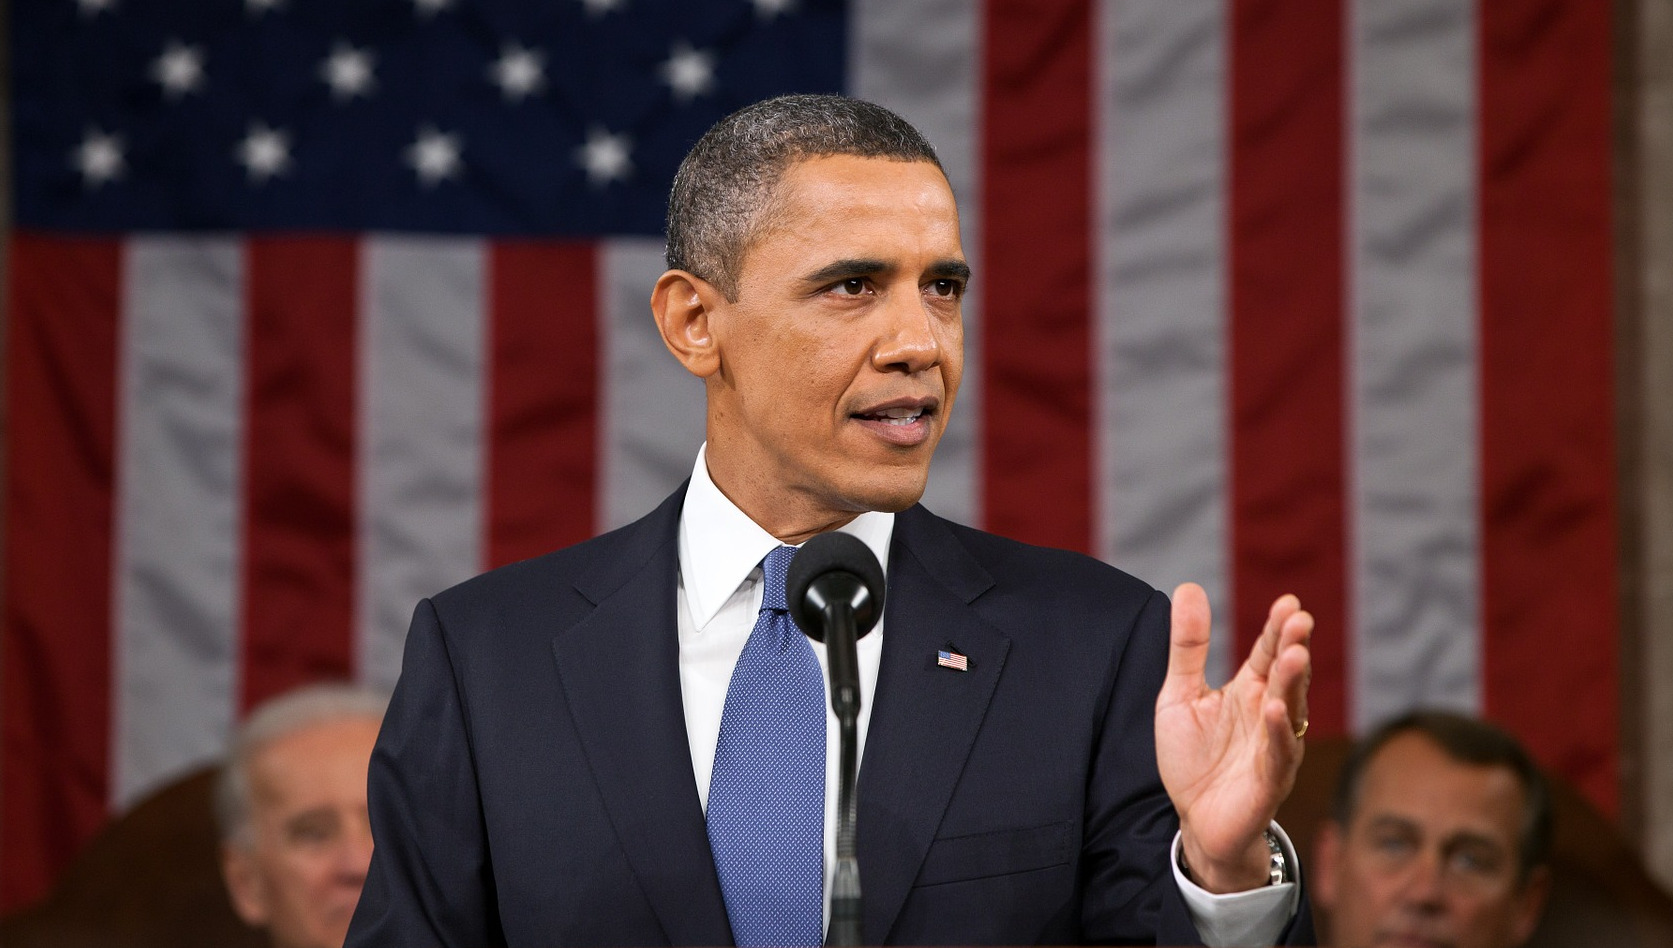 Obama at Midterm: A Round Table Discussion